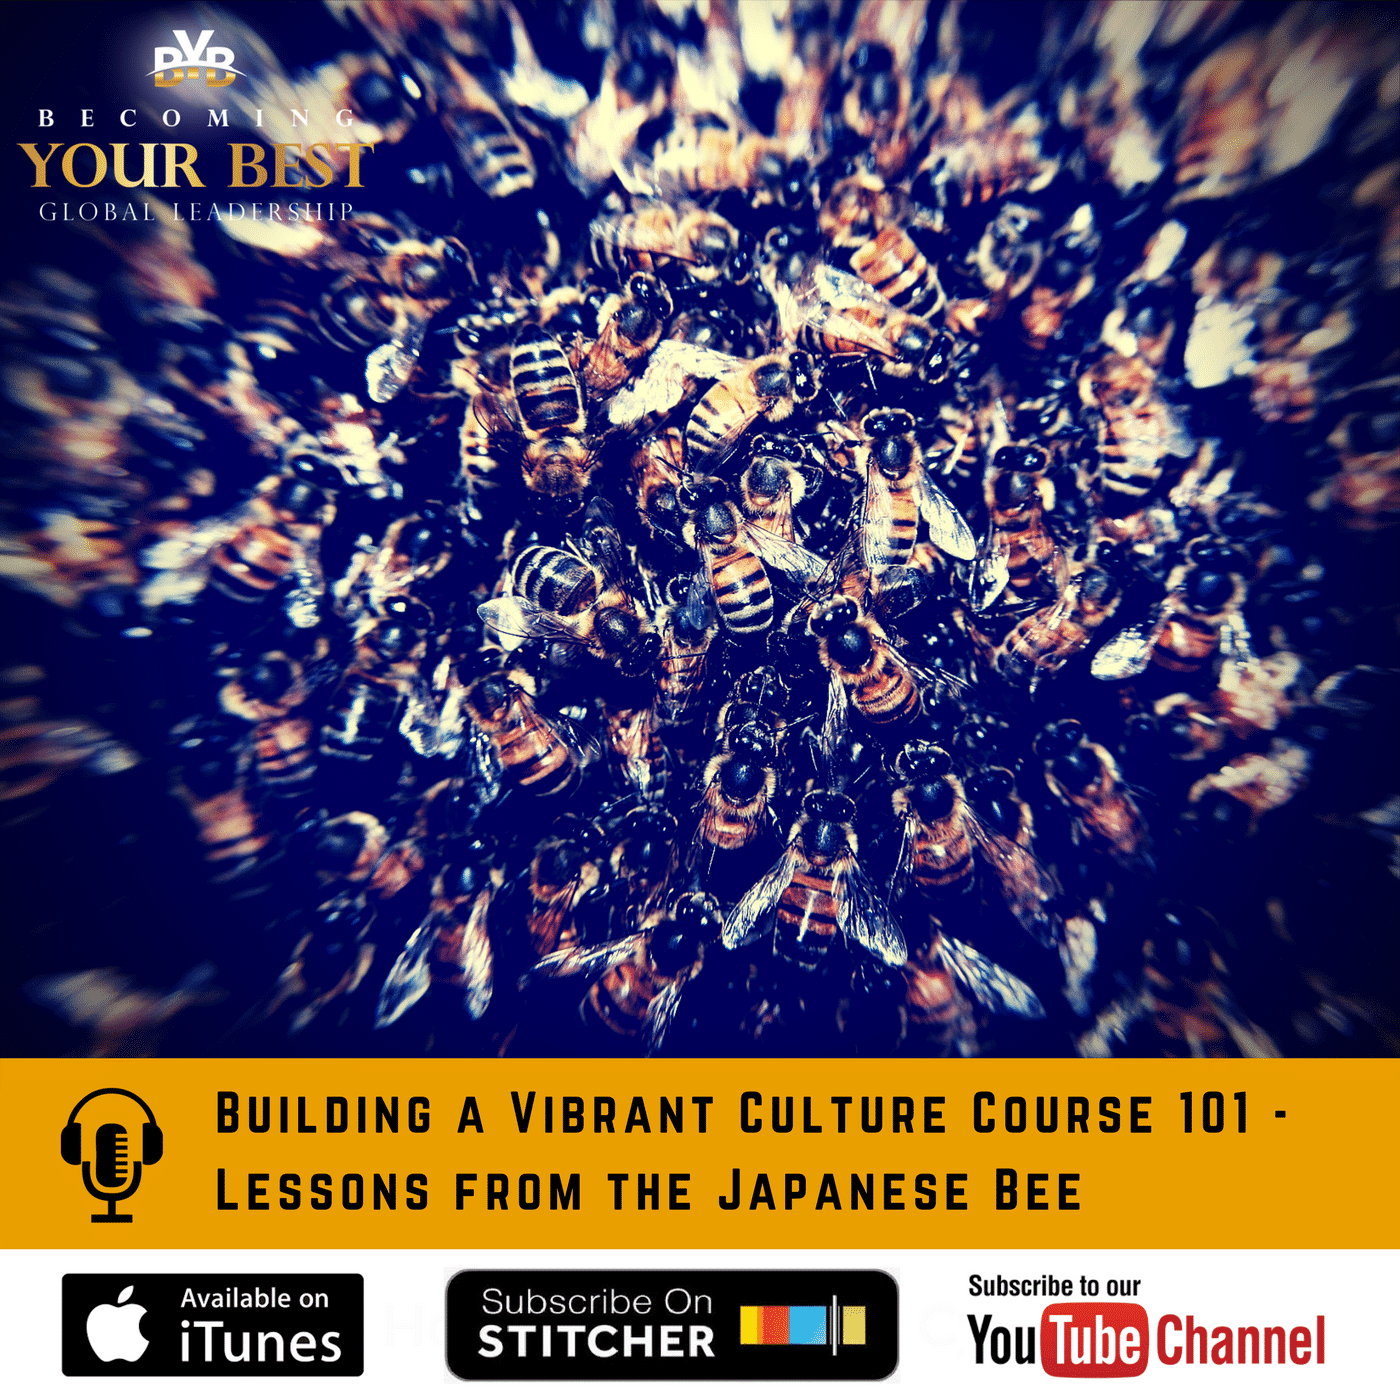 Building a Vibrant Culture Course 101 – Lessons from the Japanese Bee